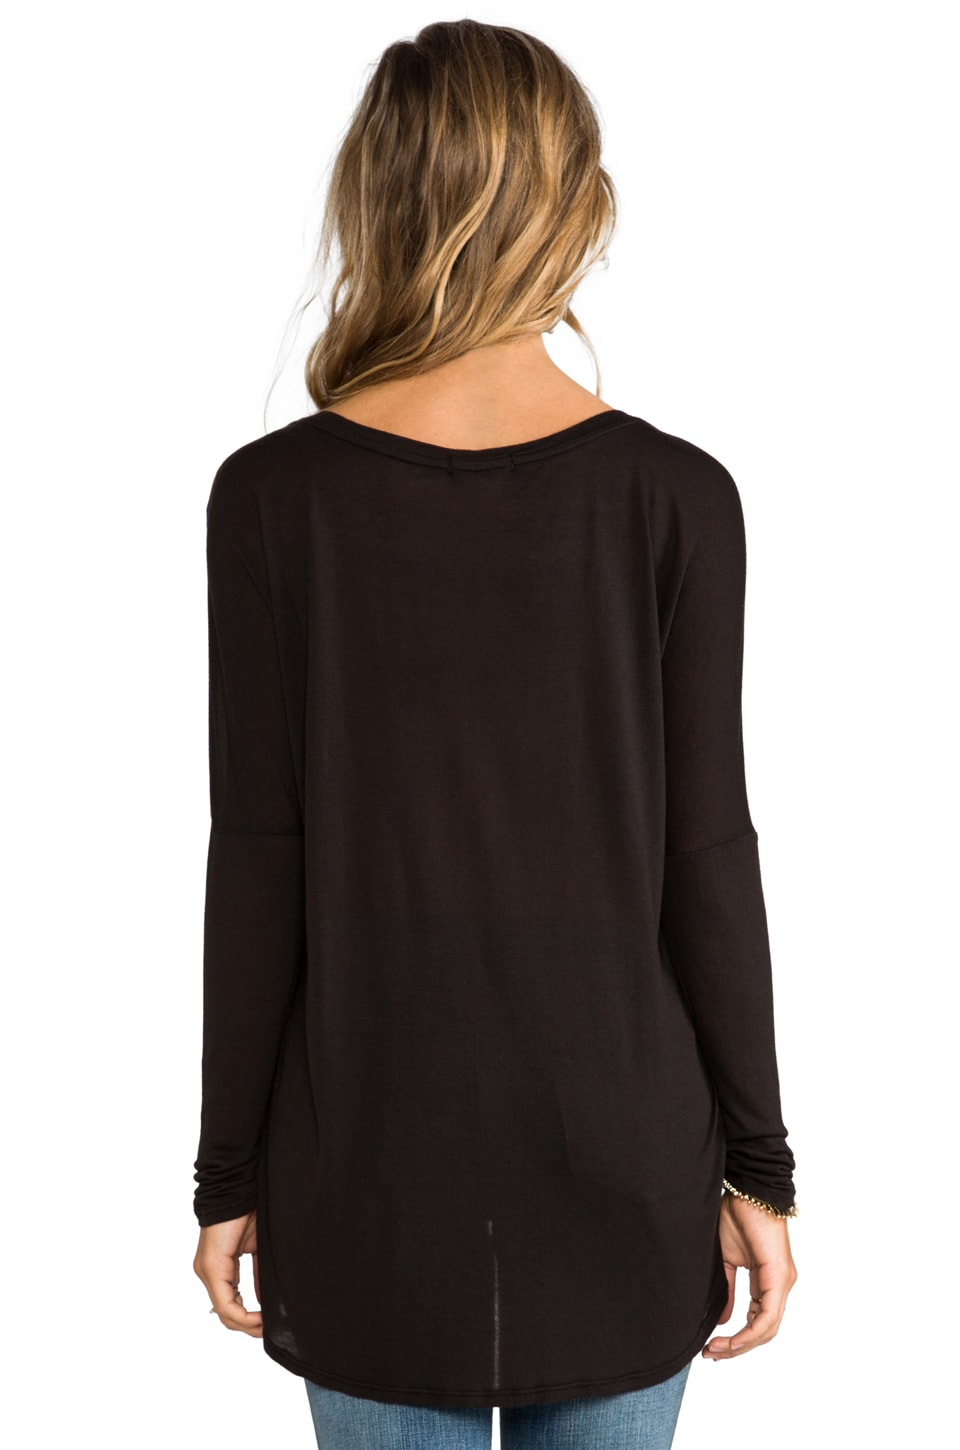 LA Made Micromodal Dropped Shoulder Top in Black